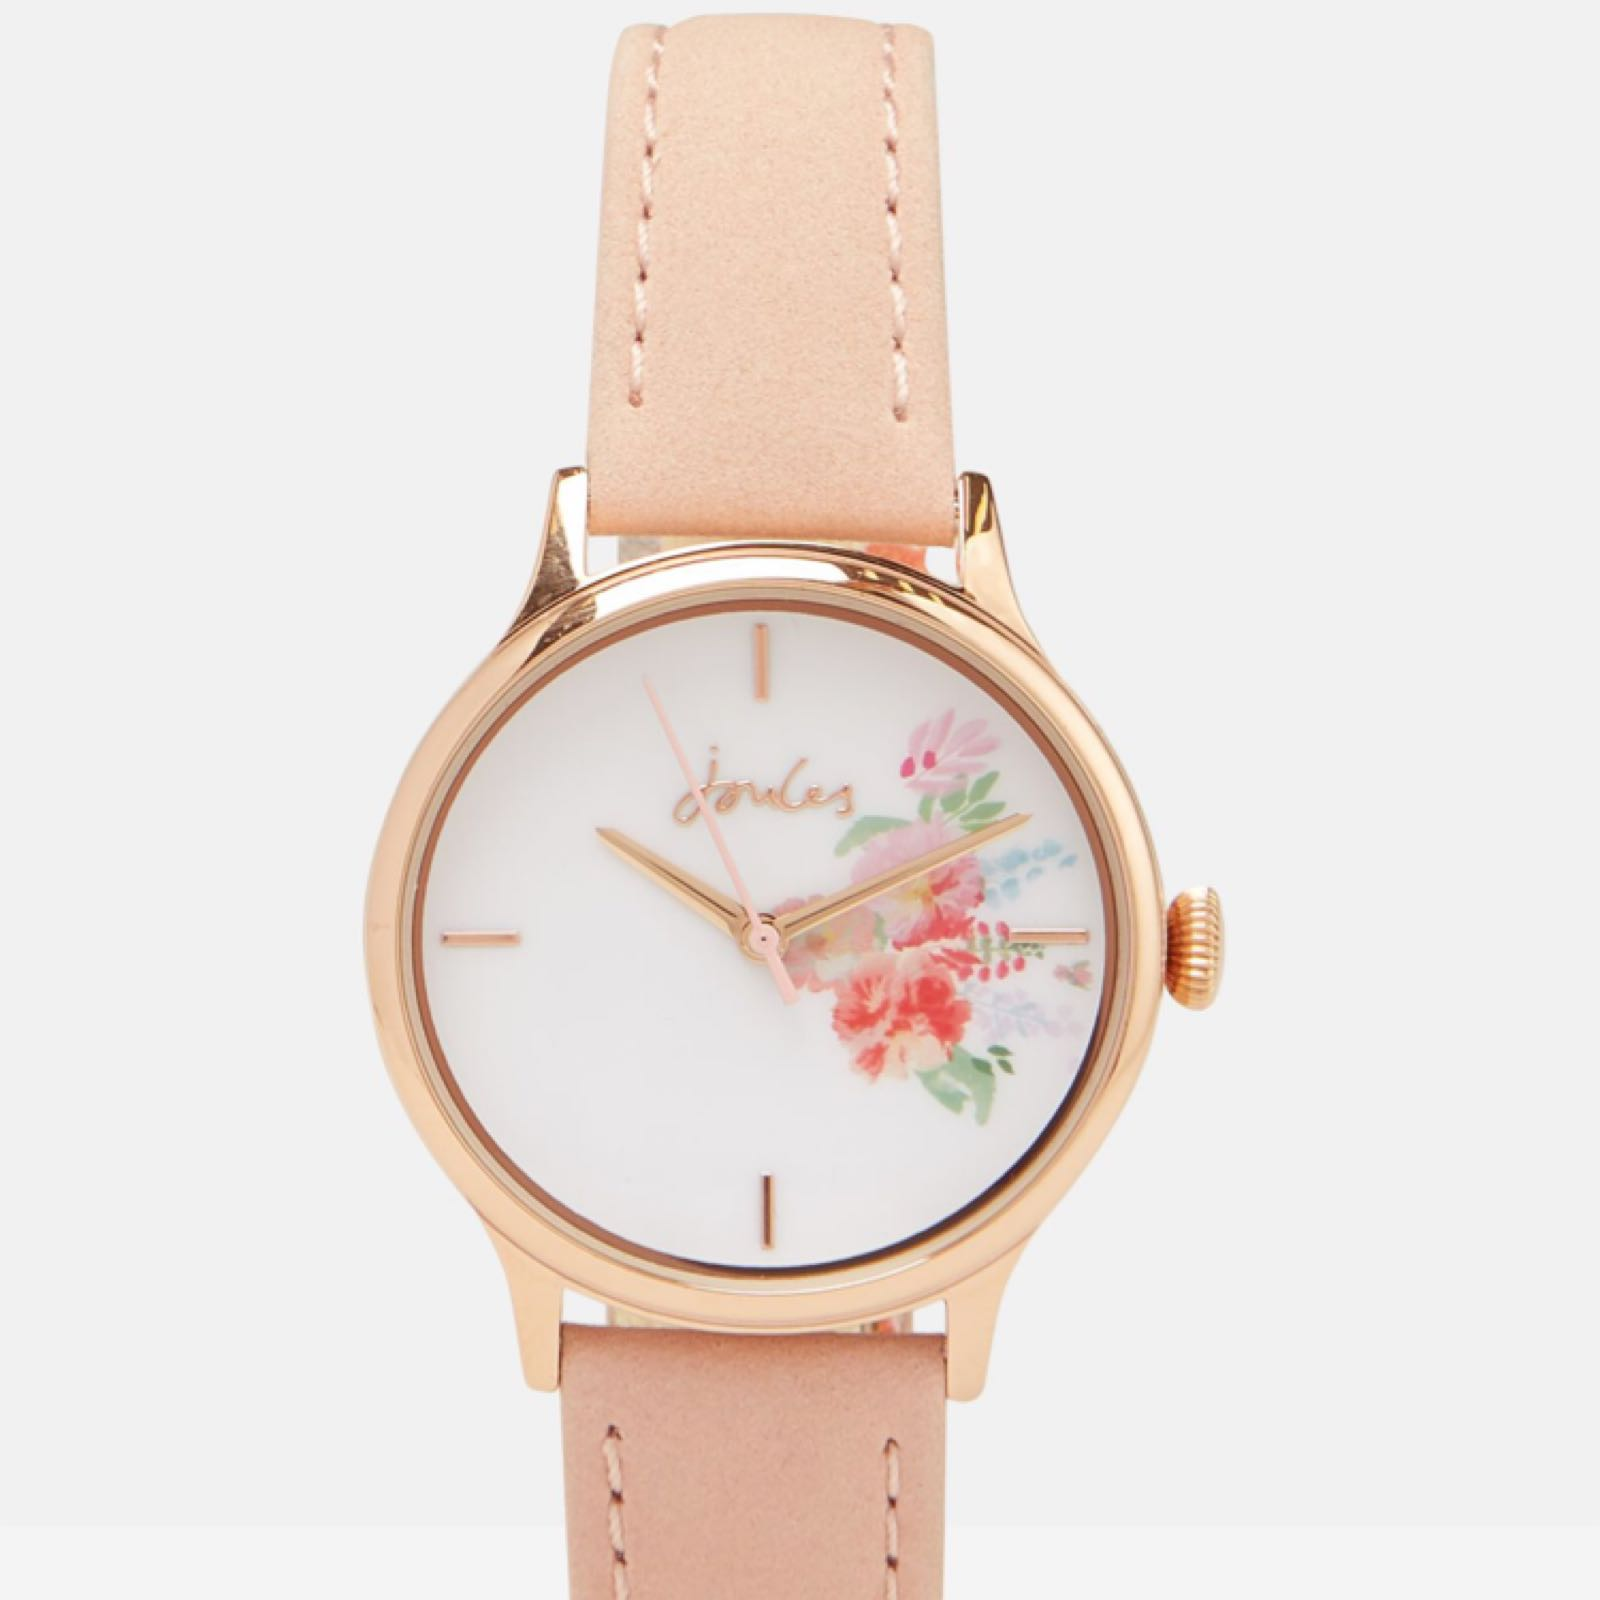 Joules nude strap rose gold case watch